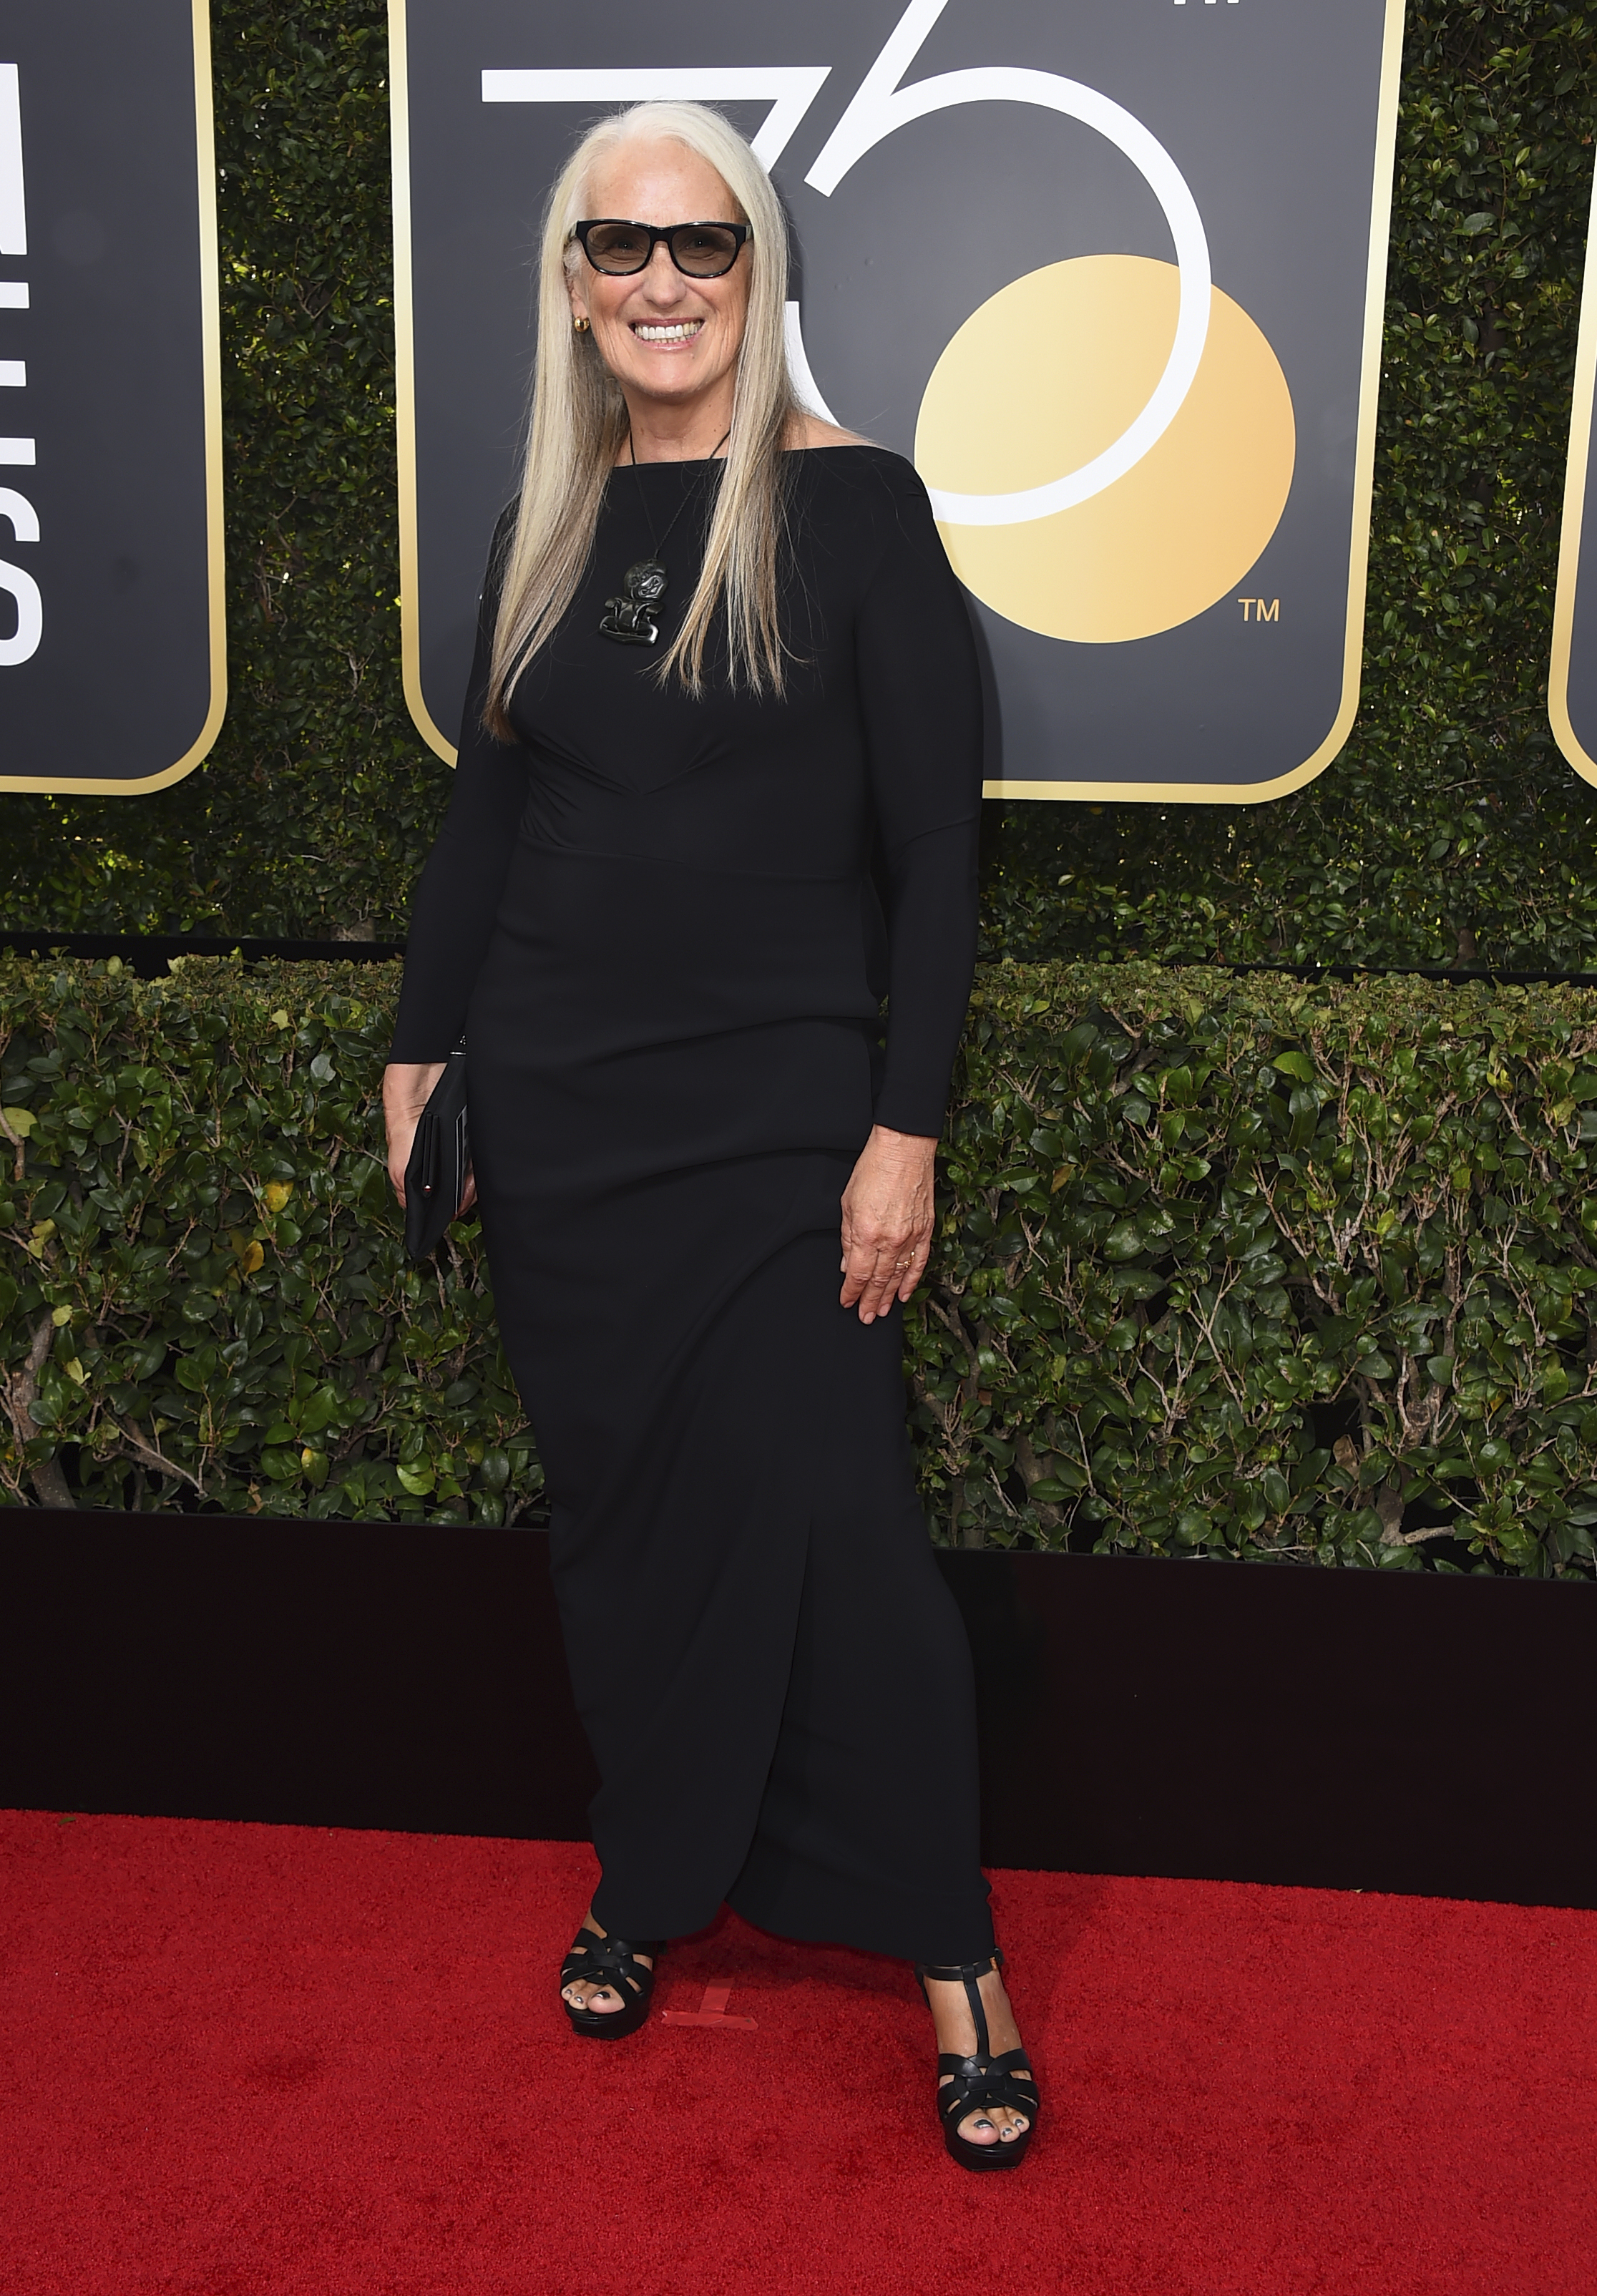 <div class='meta'><div class='origin-logo' data-origin='AP'></div><span class='caption-text' data-credit='Jordan Strauss/Invision/AP'>Jane Campion arrives at the 75th annual Golden Globe Awards at the Beverly Hilton Hotel on Sunday, Jan. 7, 2018, in Beverly Hills, Calif.</span></div>